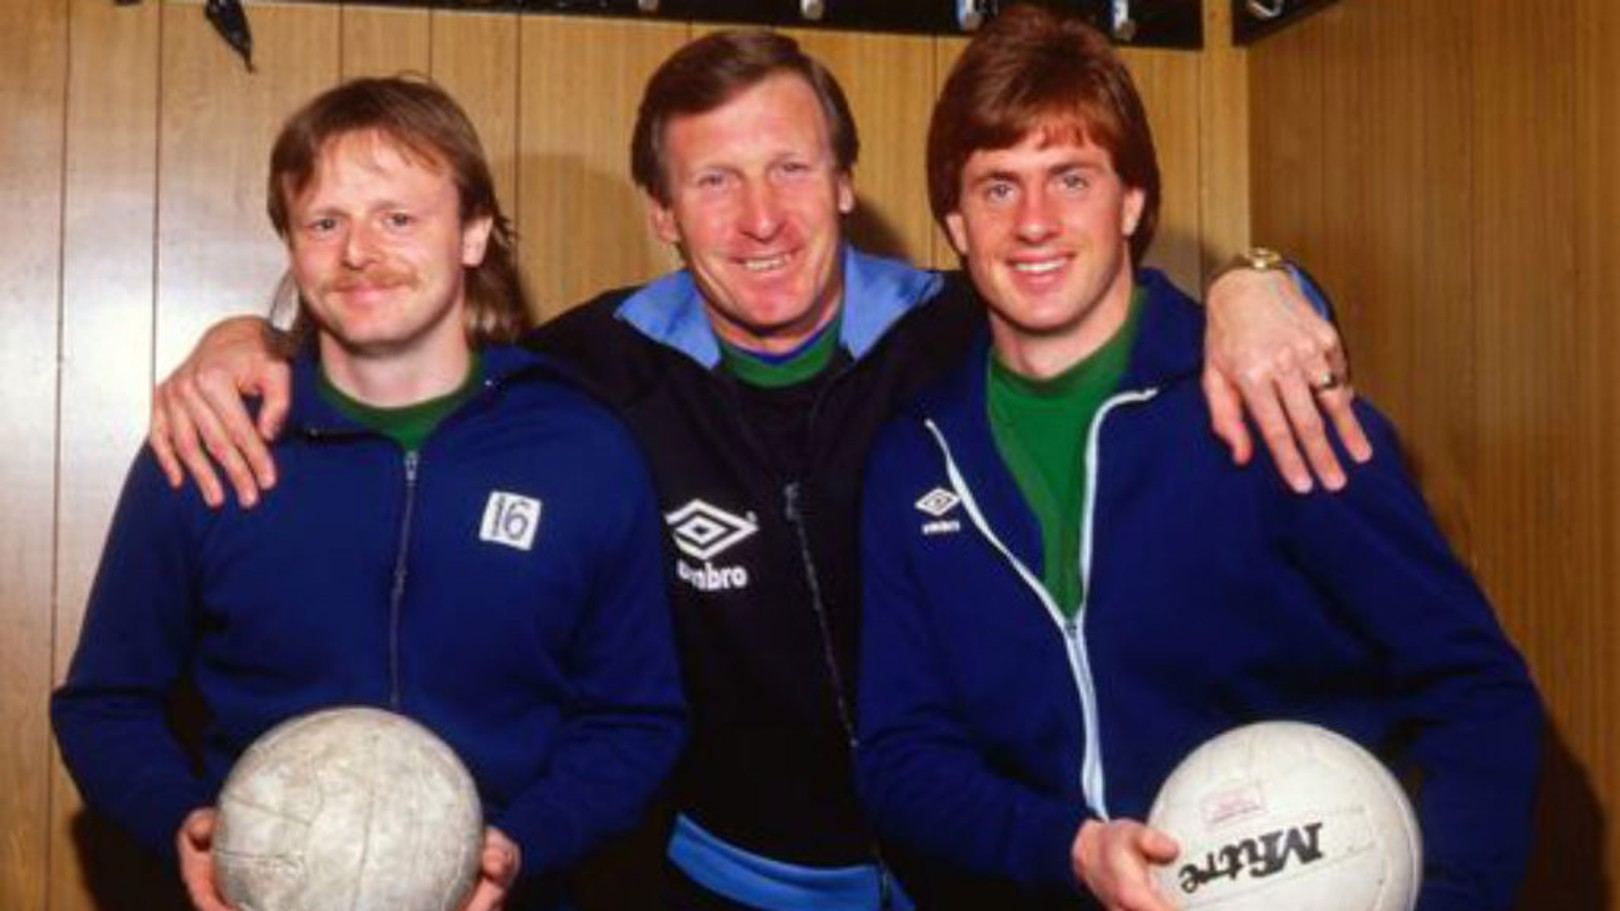 MCNEILL: The former City manager has passed away aged 79